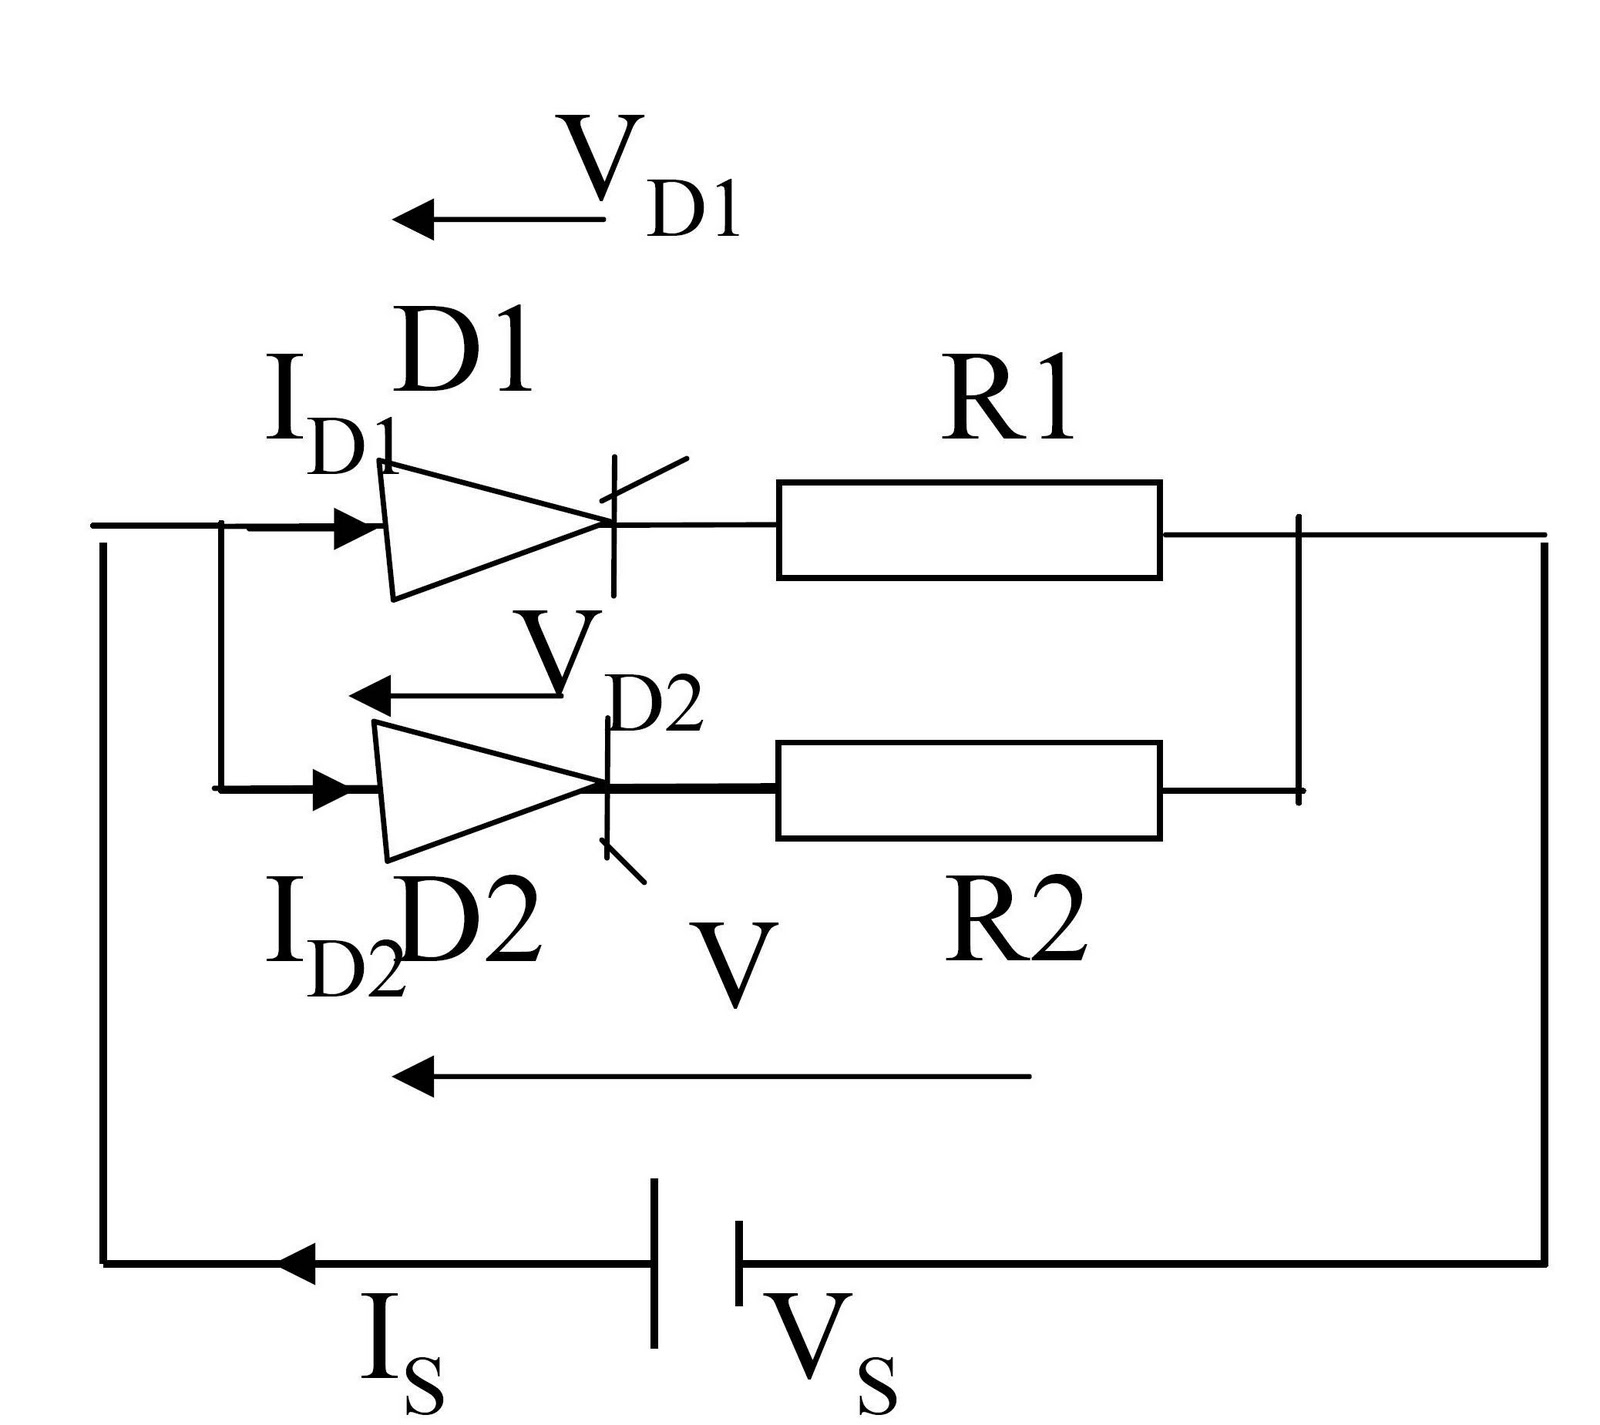 Series And Parallel Connected Power Electronic Devices